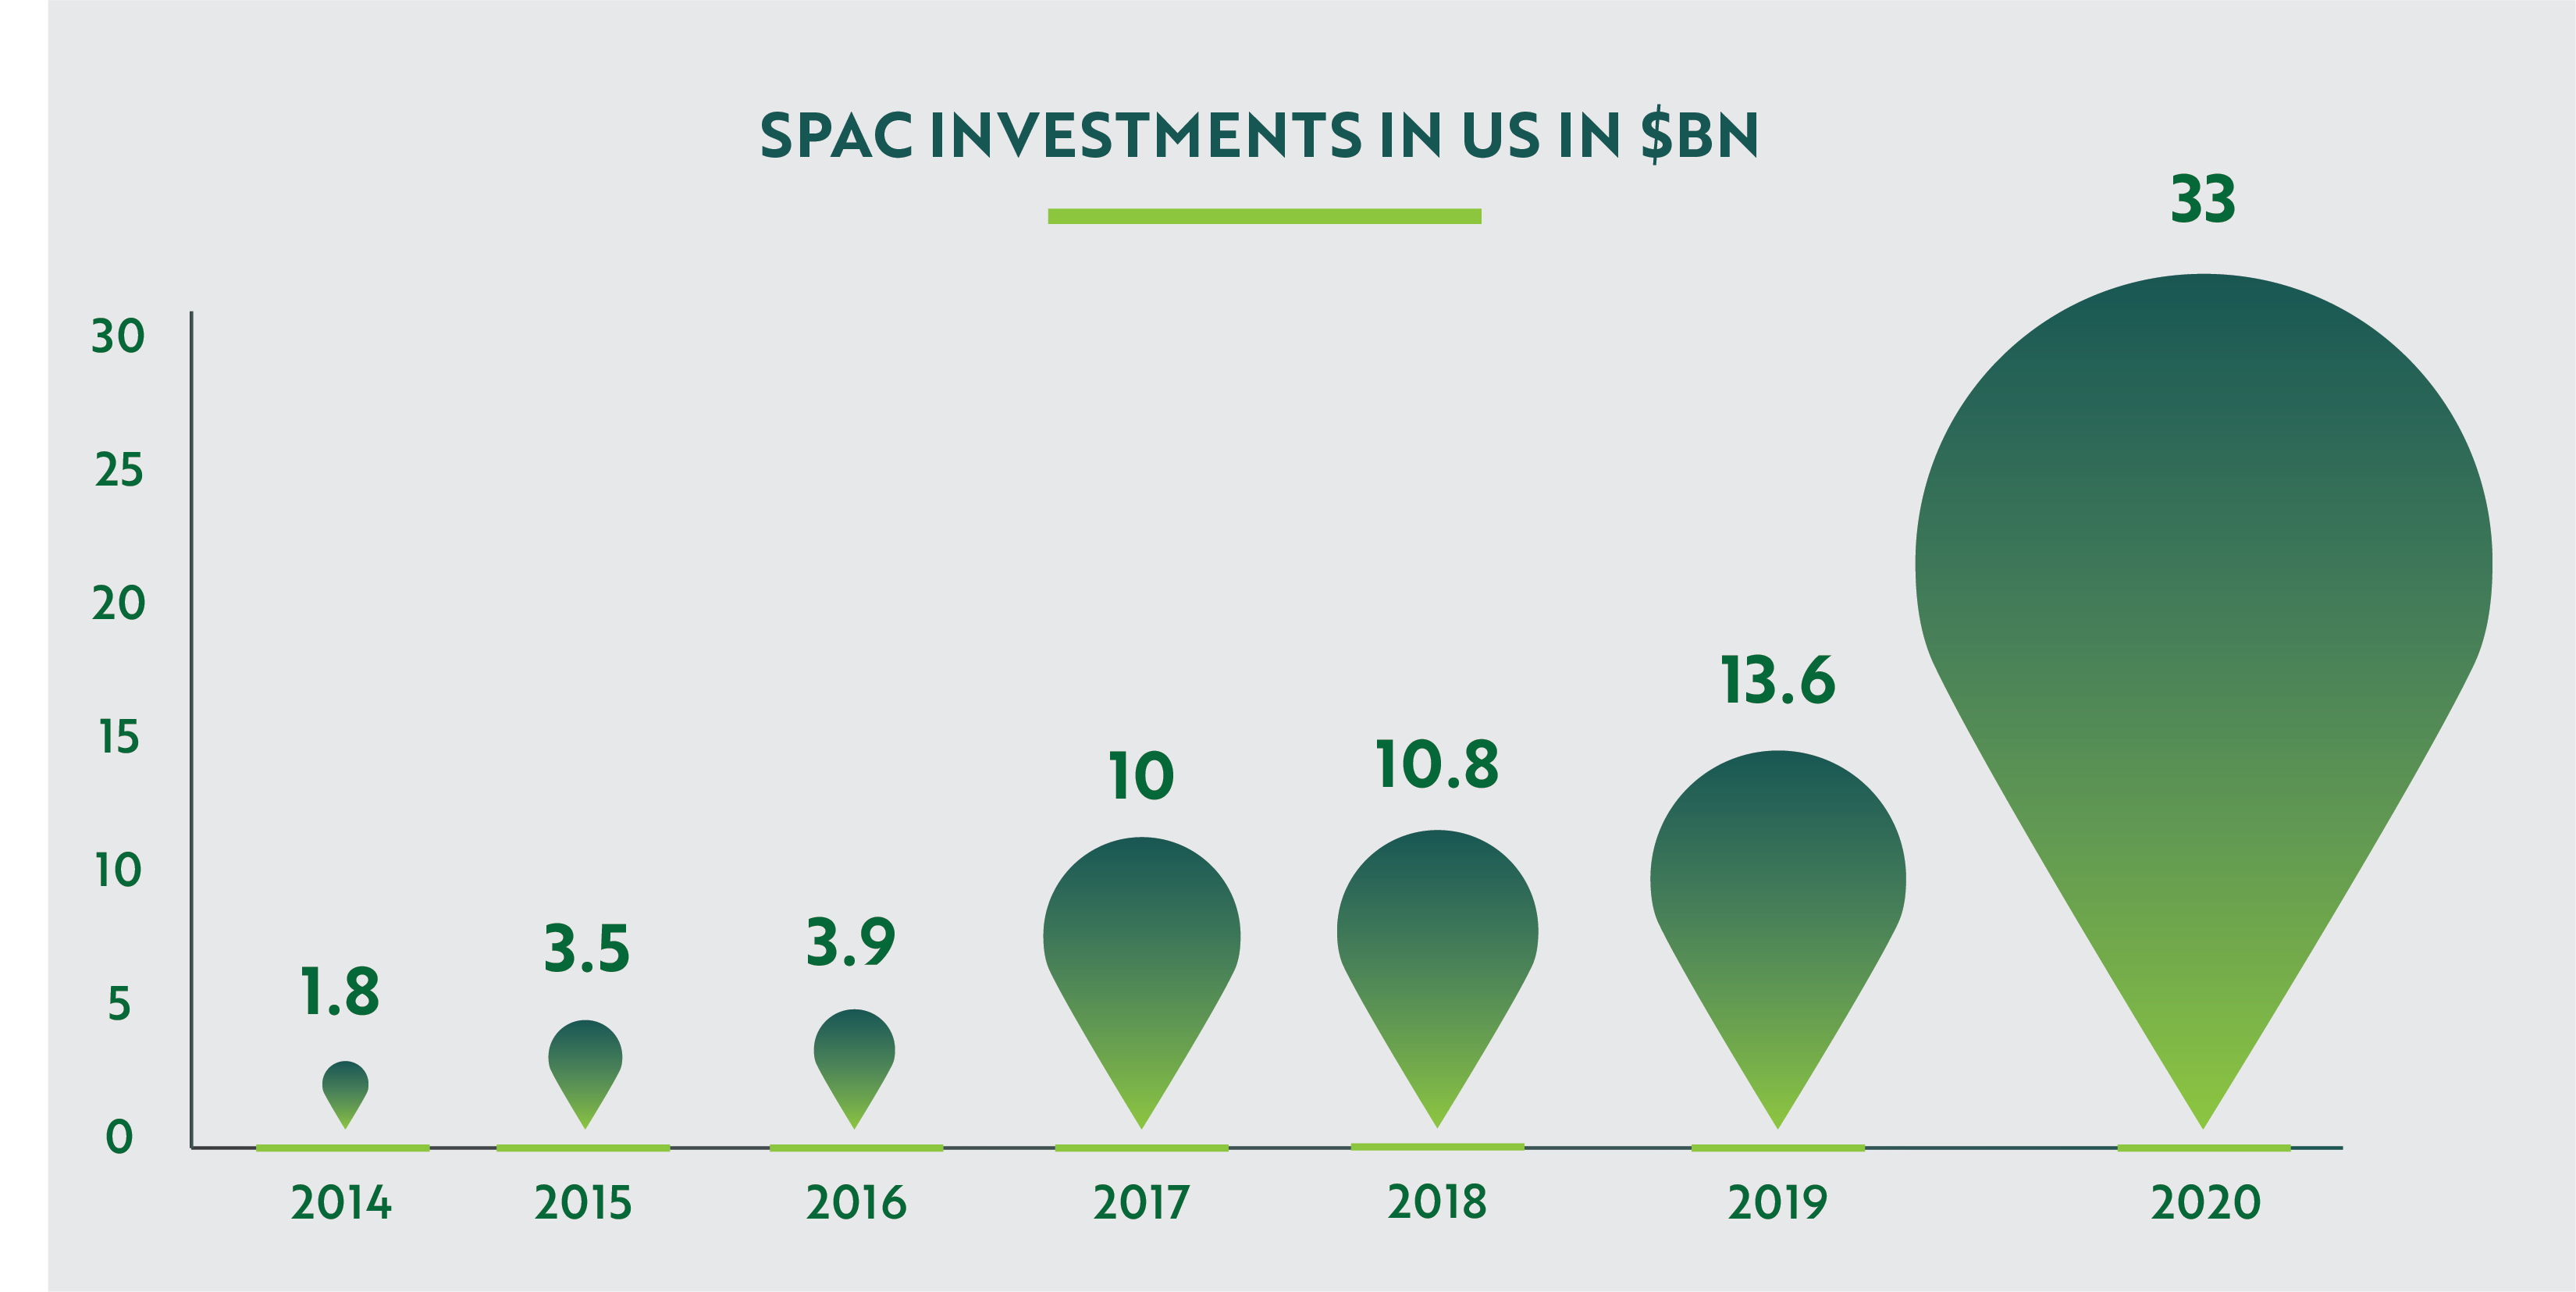 SPAC Investments